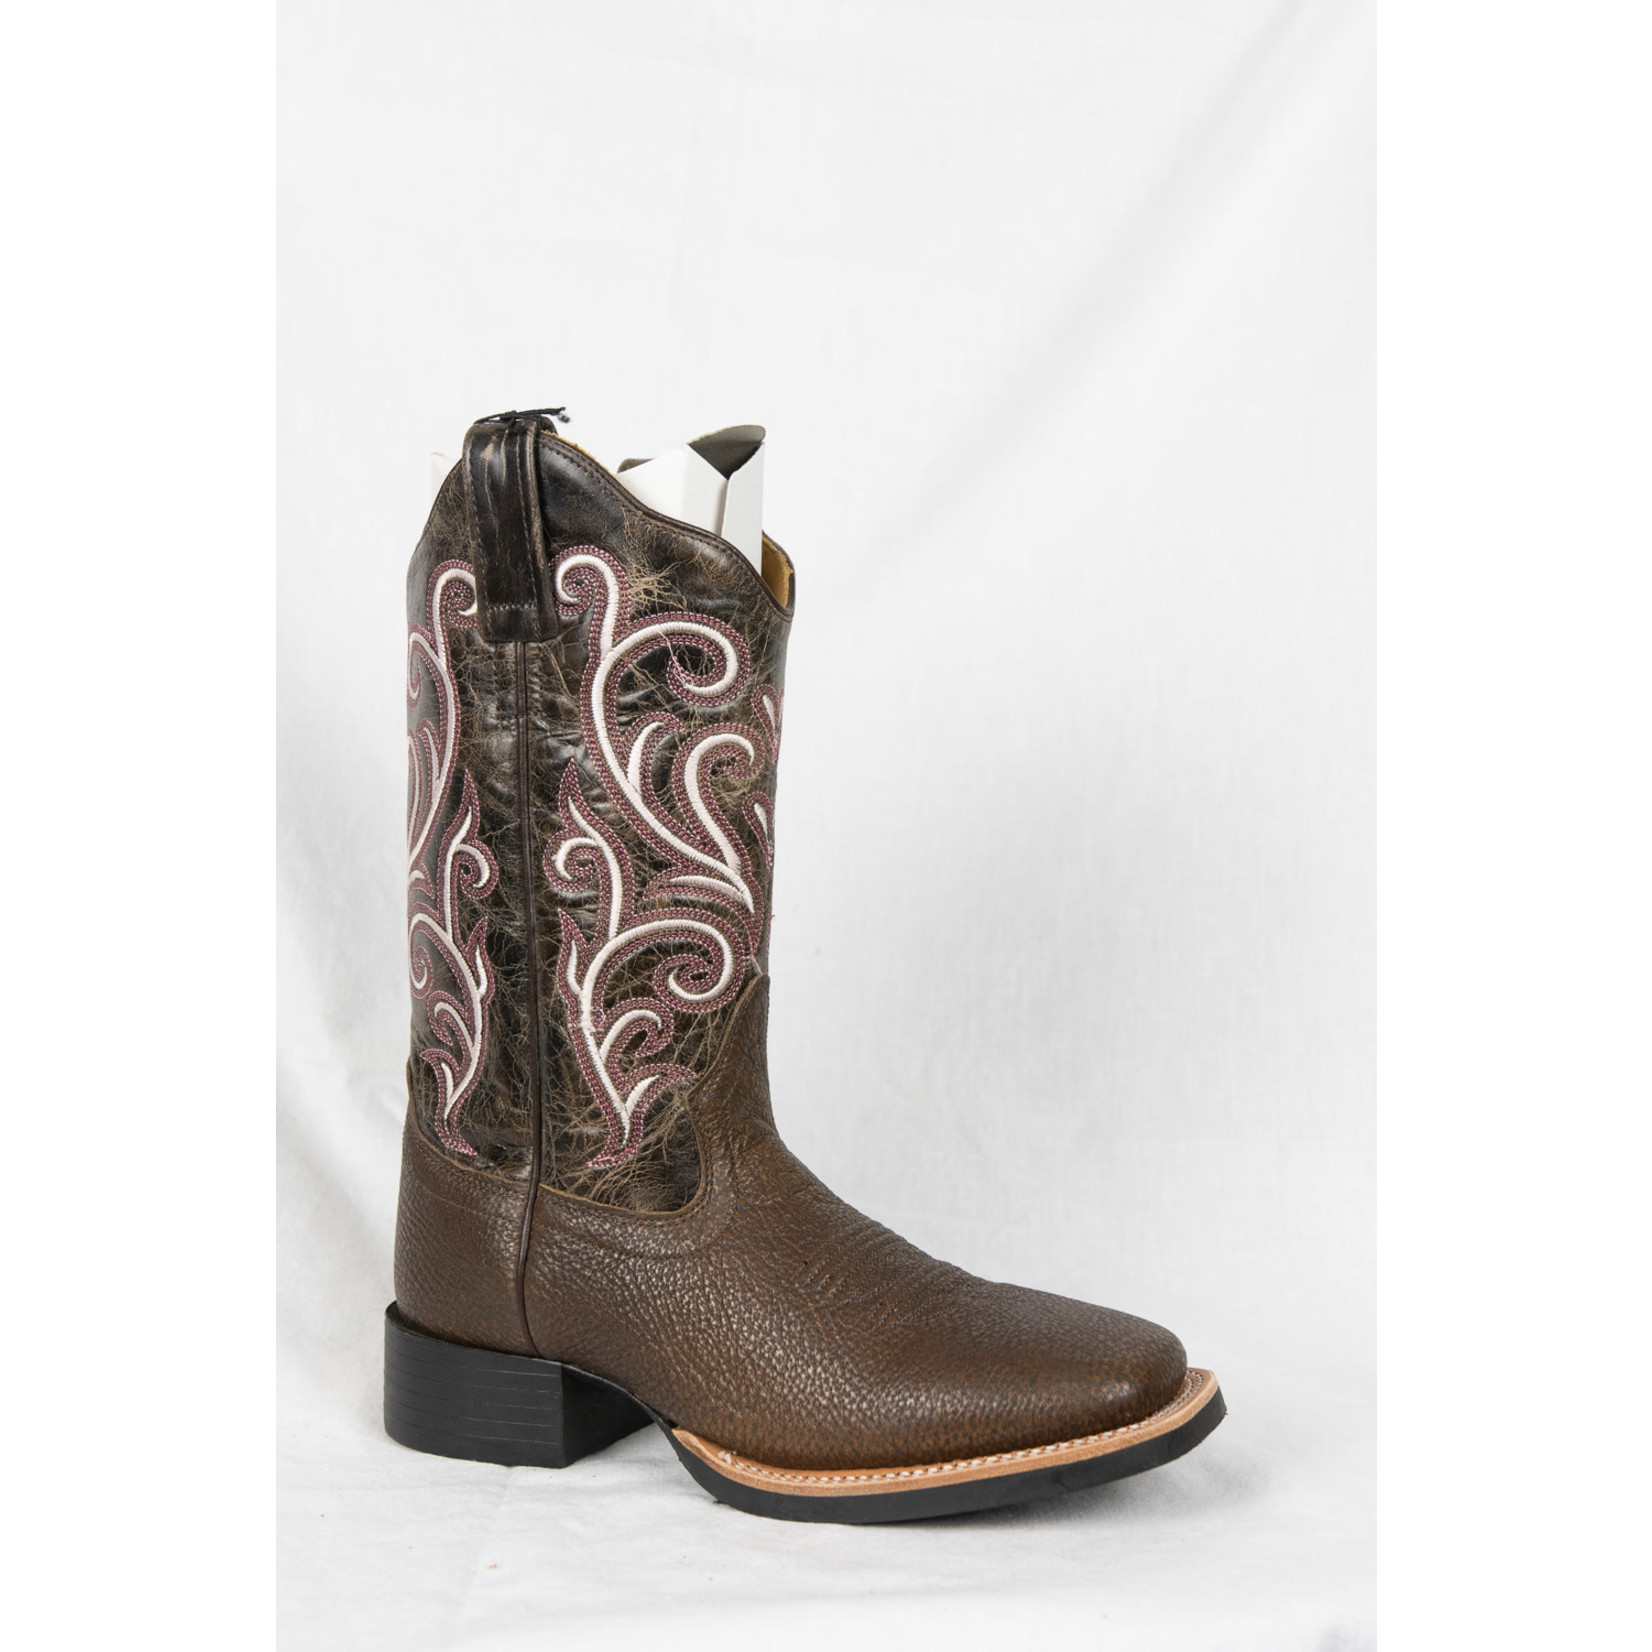 Old west Old West Women's Cowboy Boot 18118 C